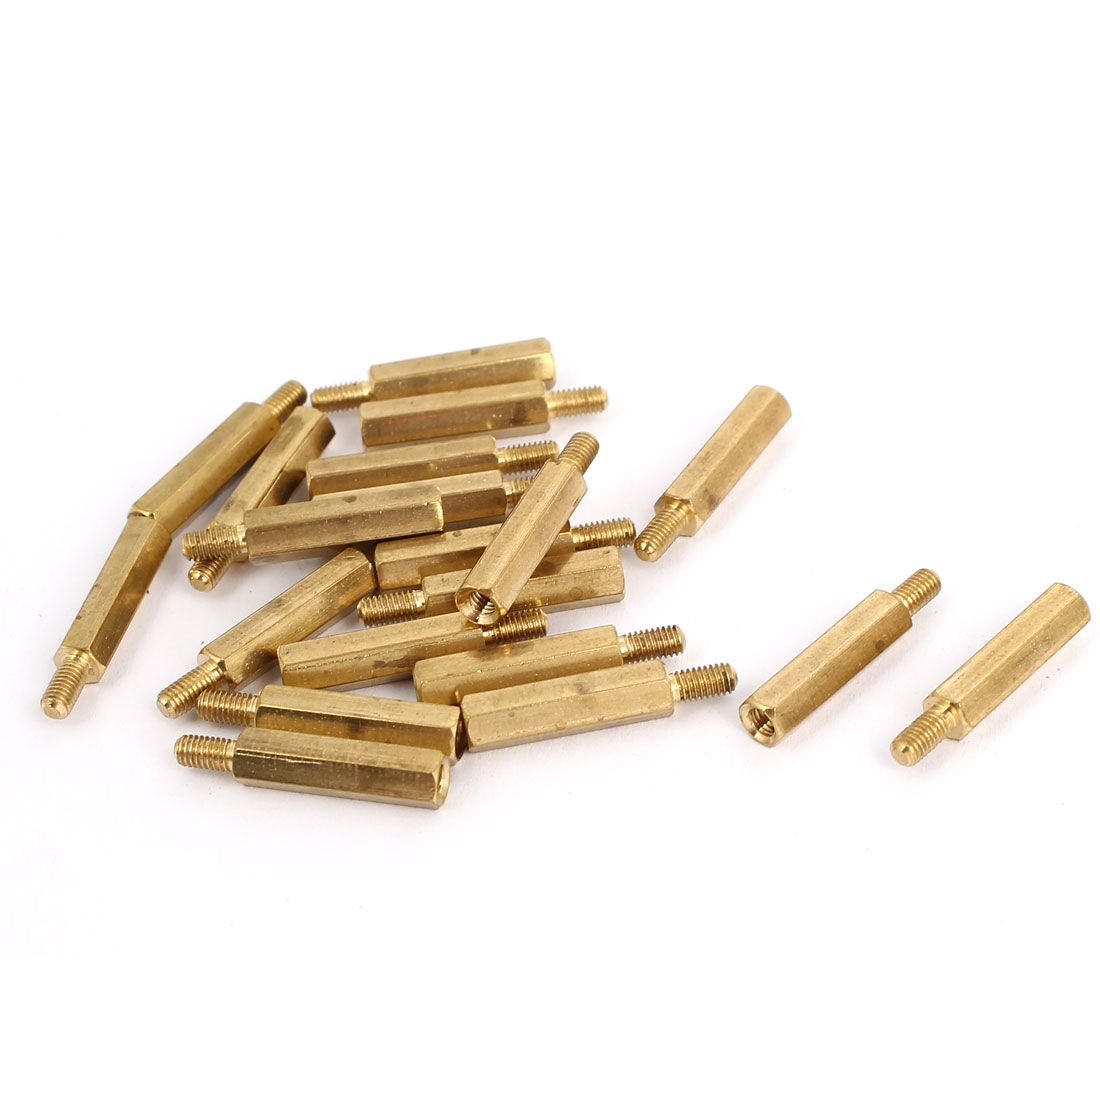 M3 Male to Female Thread Insulated Brass Standoff Hexagonal Spacer 18+6mm Long 20pcs